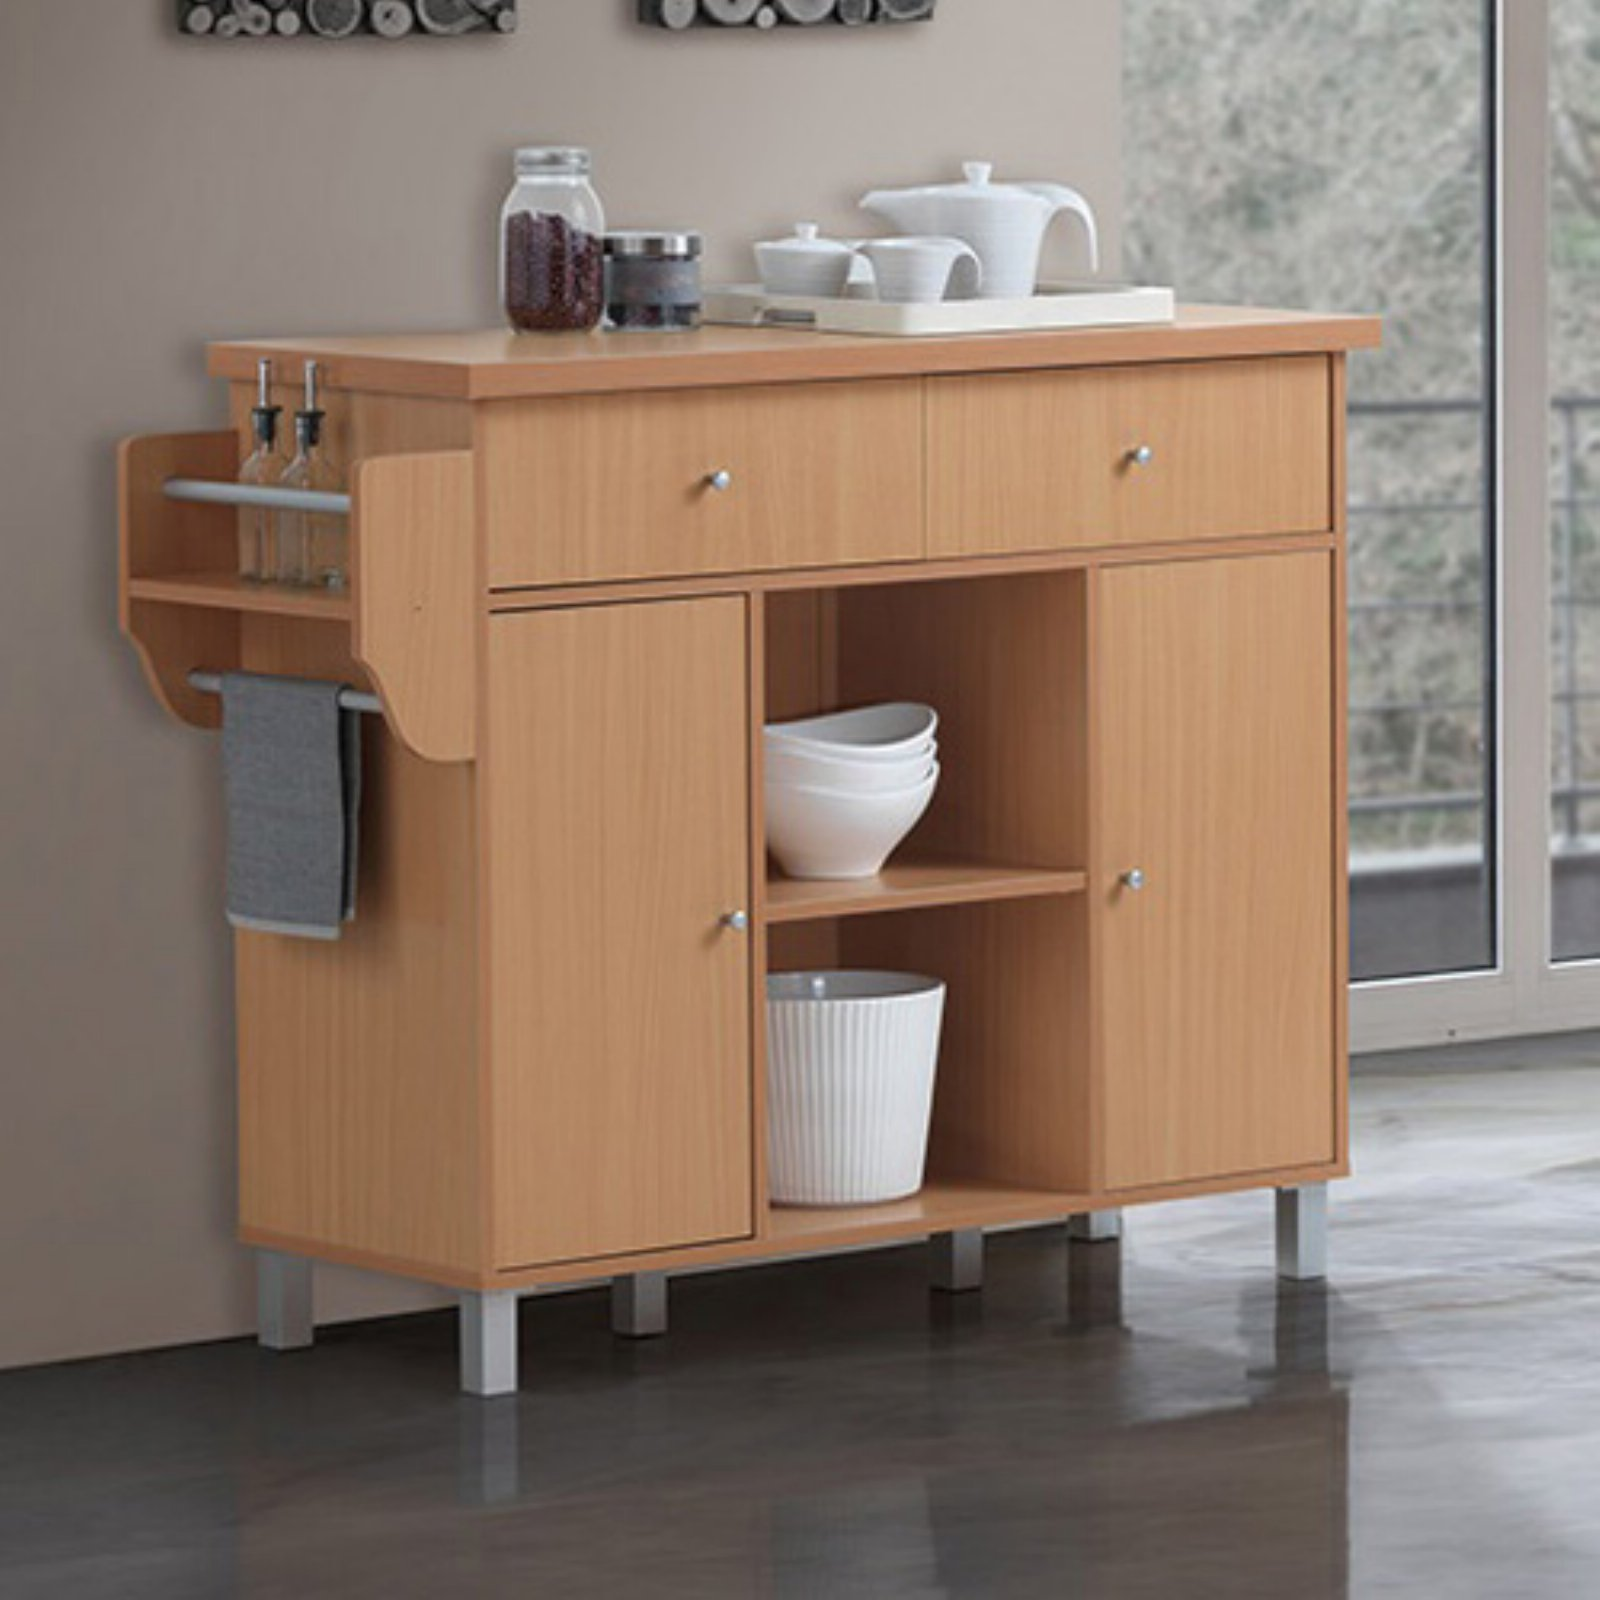 how to select kitchen cabinets hodedah kitchen island with spice rack walmart 7356